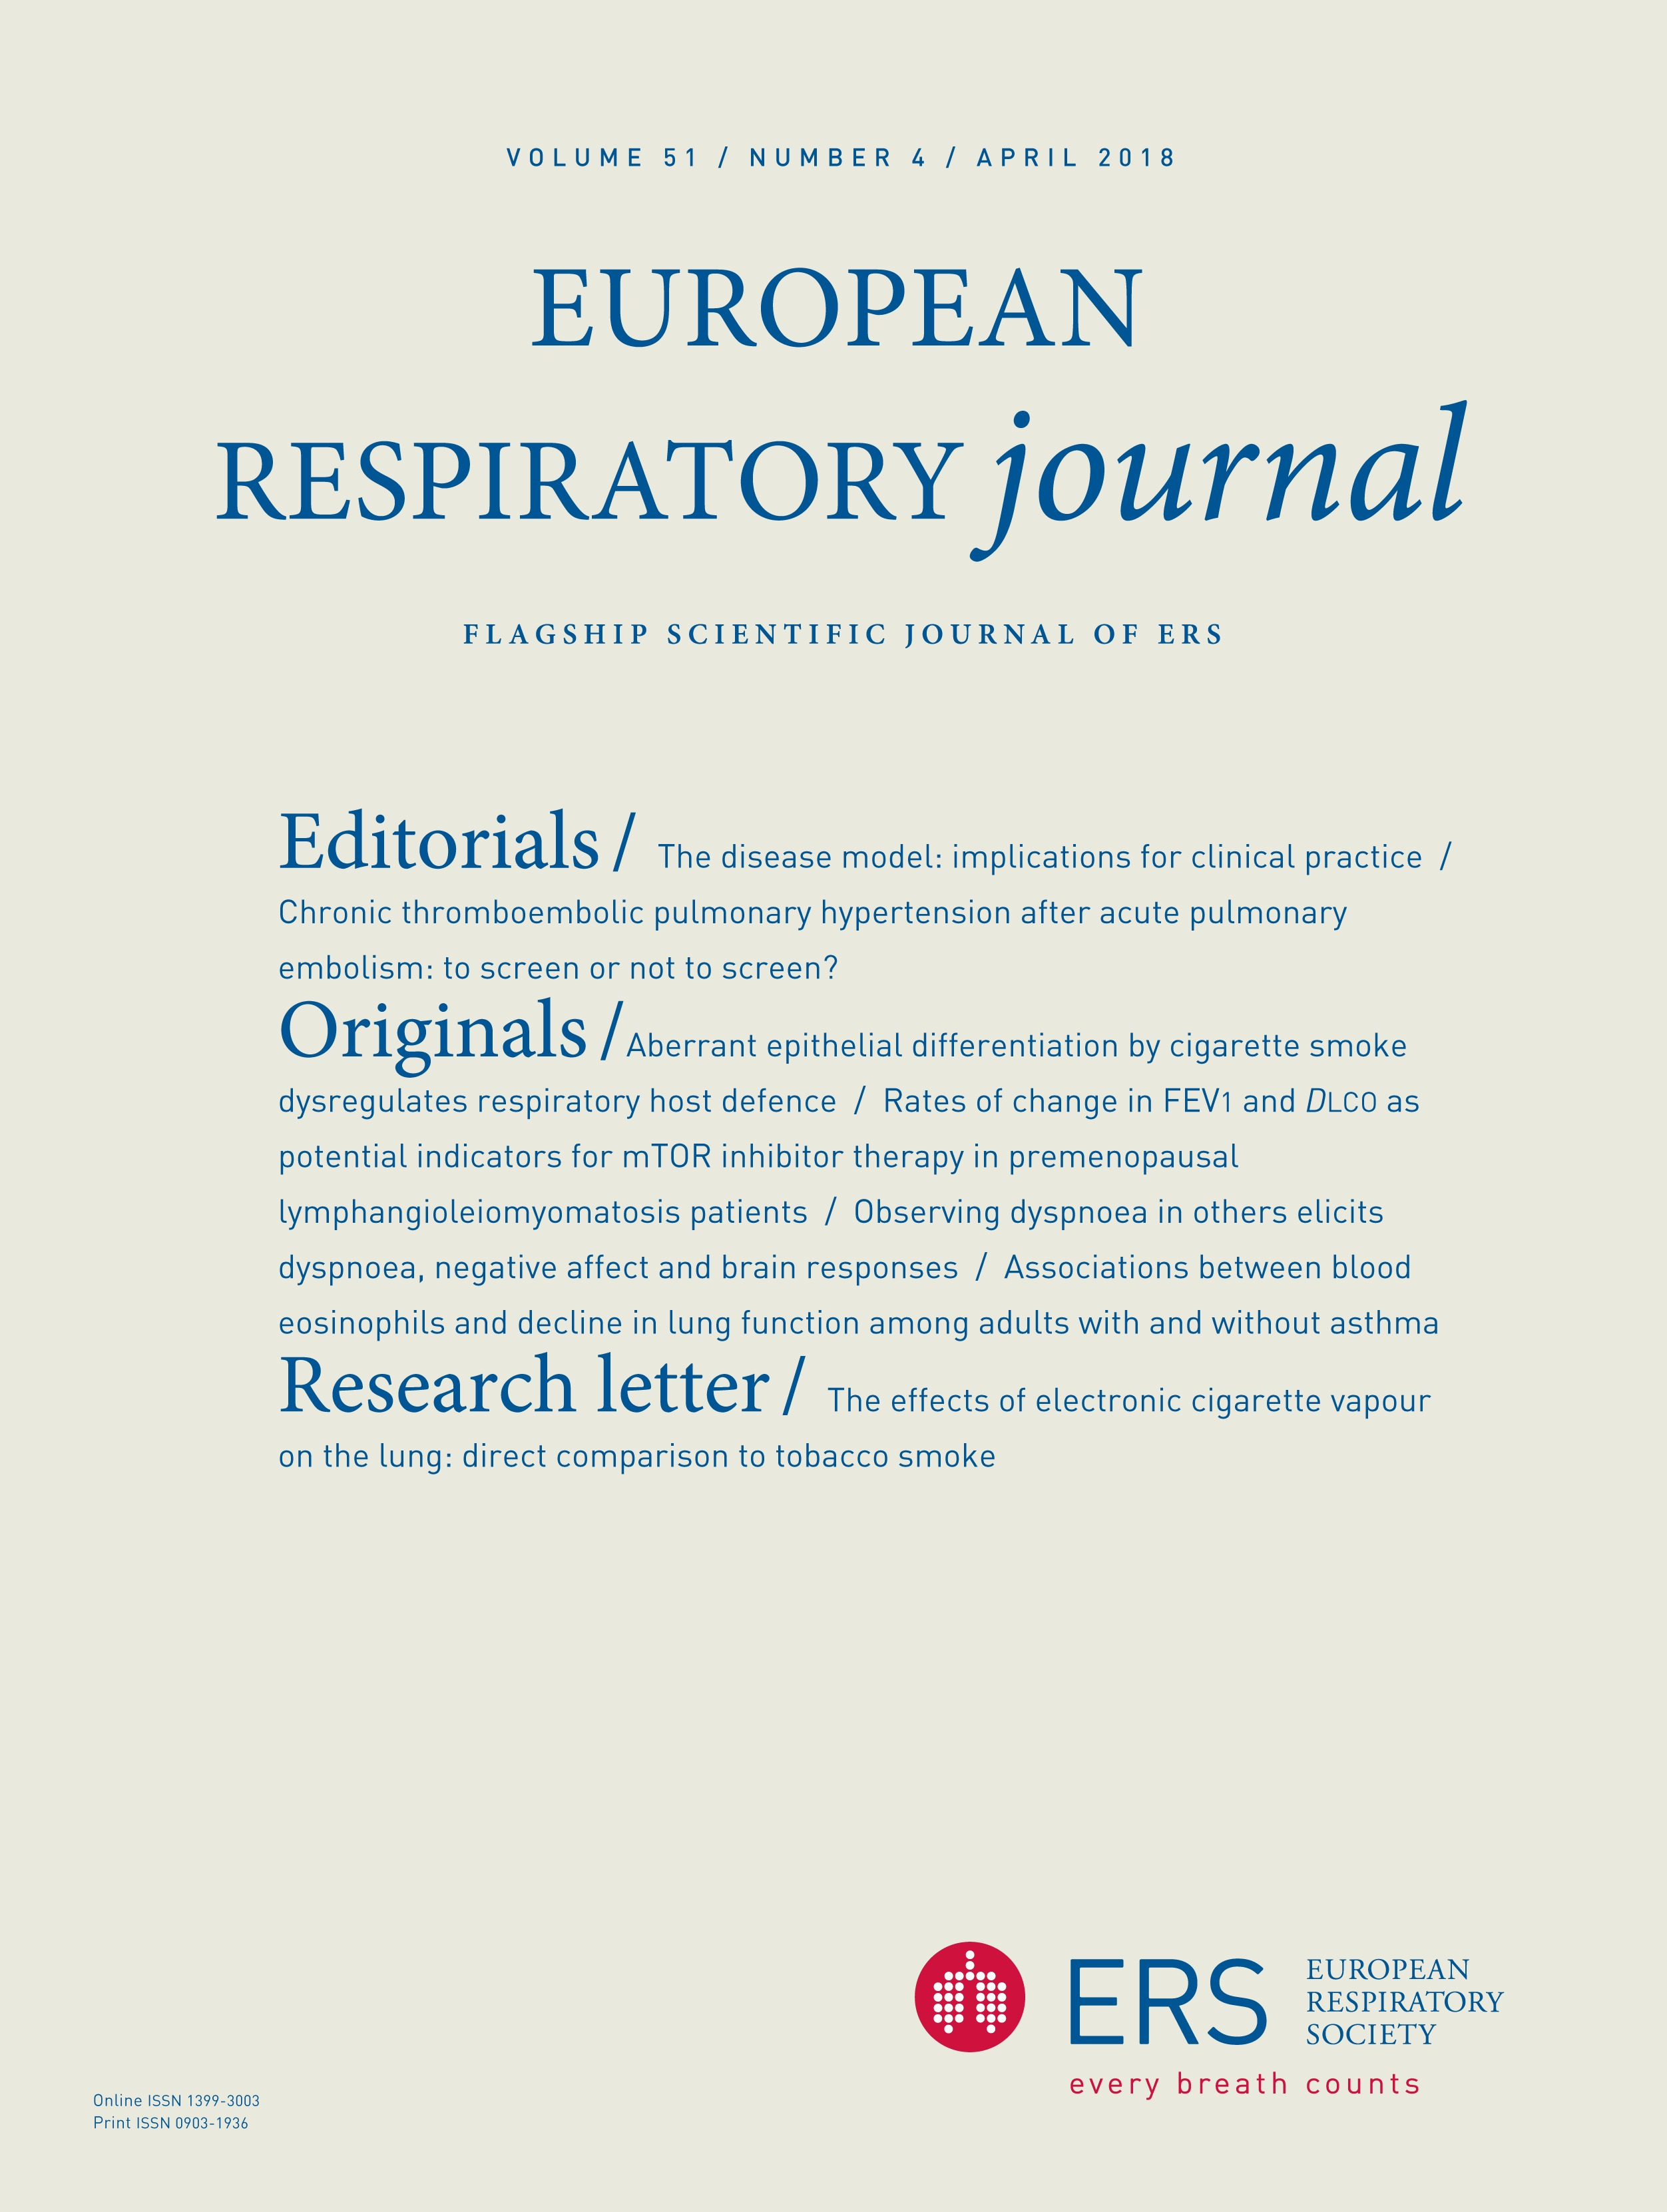 The Effects Of Electronic Cigarette Vapour On Lung Direct Comparison To Tobacco Smoke